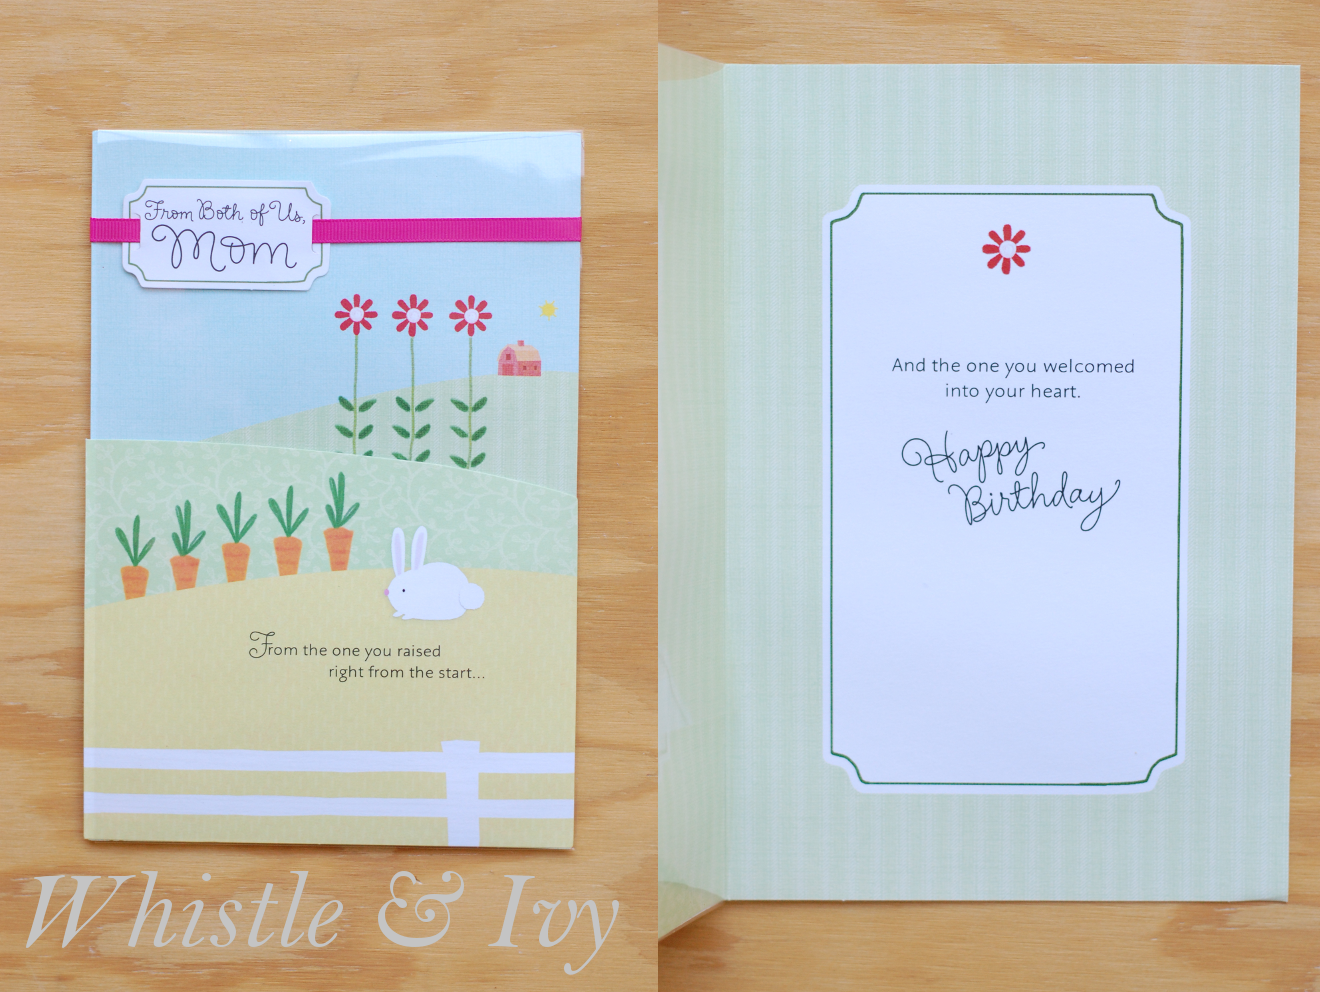 Hallmark Birthday Card Awesomeness Whistle and Ivy – Hallmark Birthday Cards